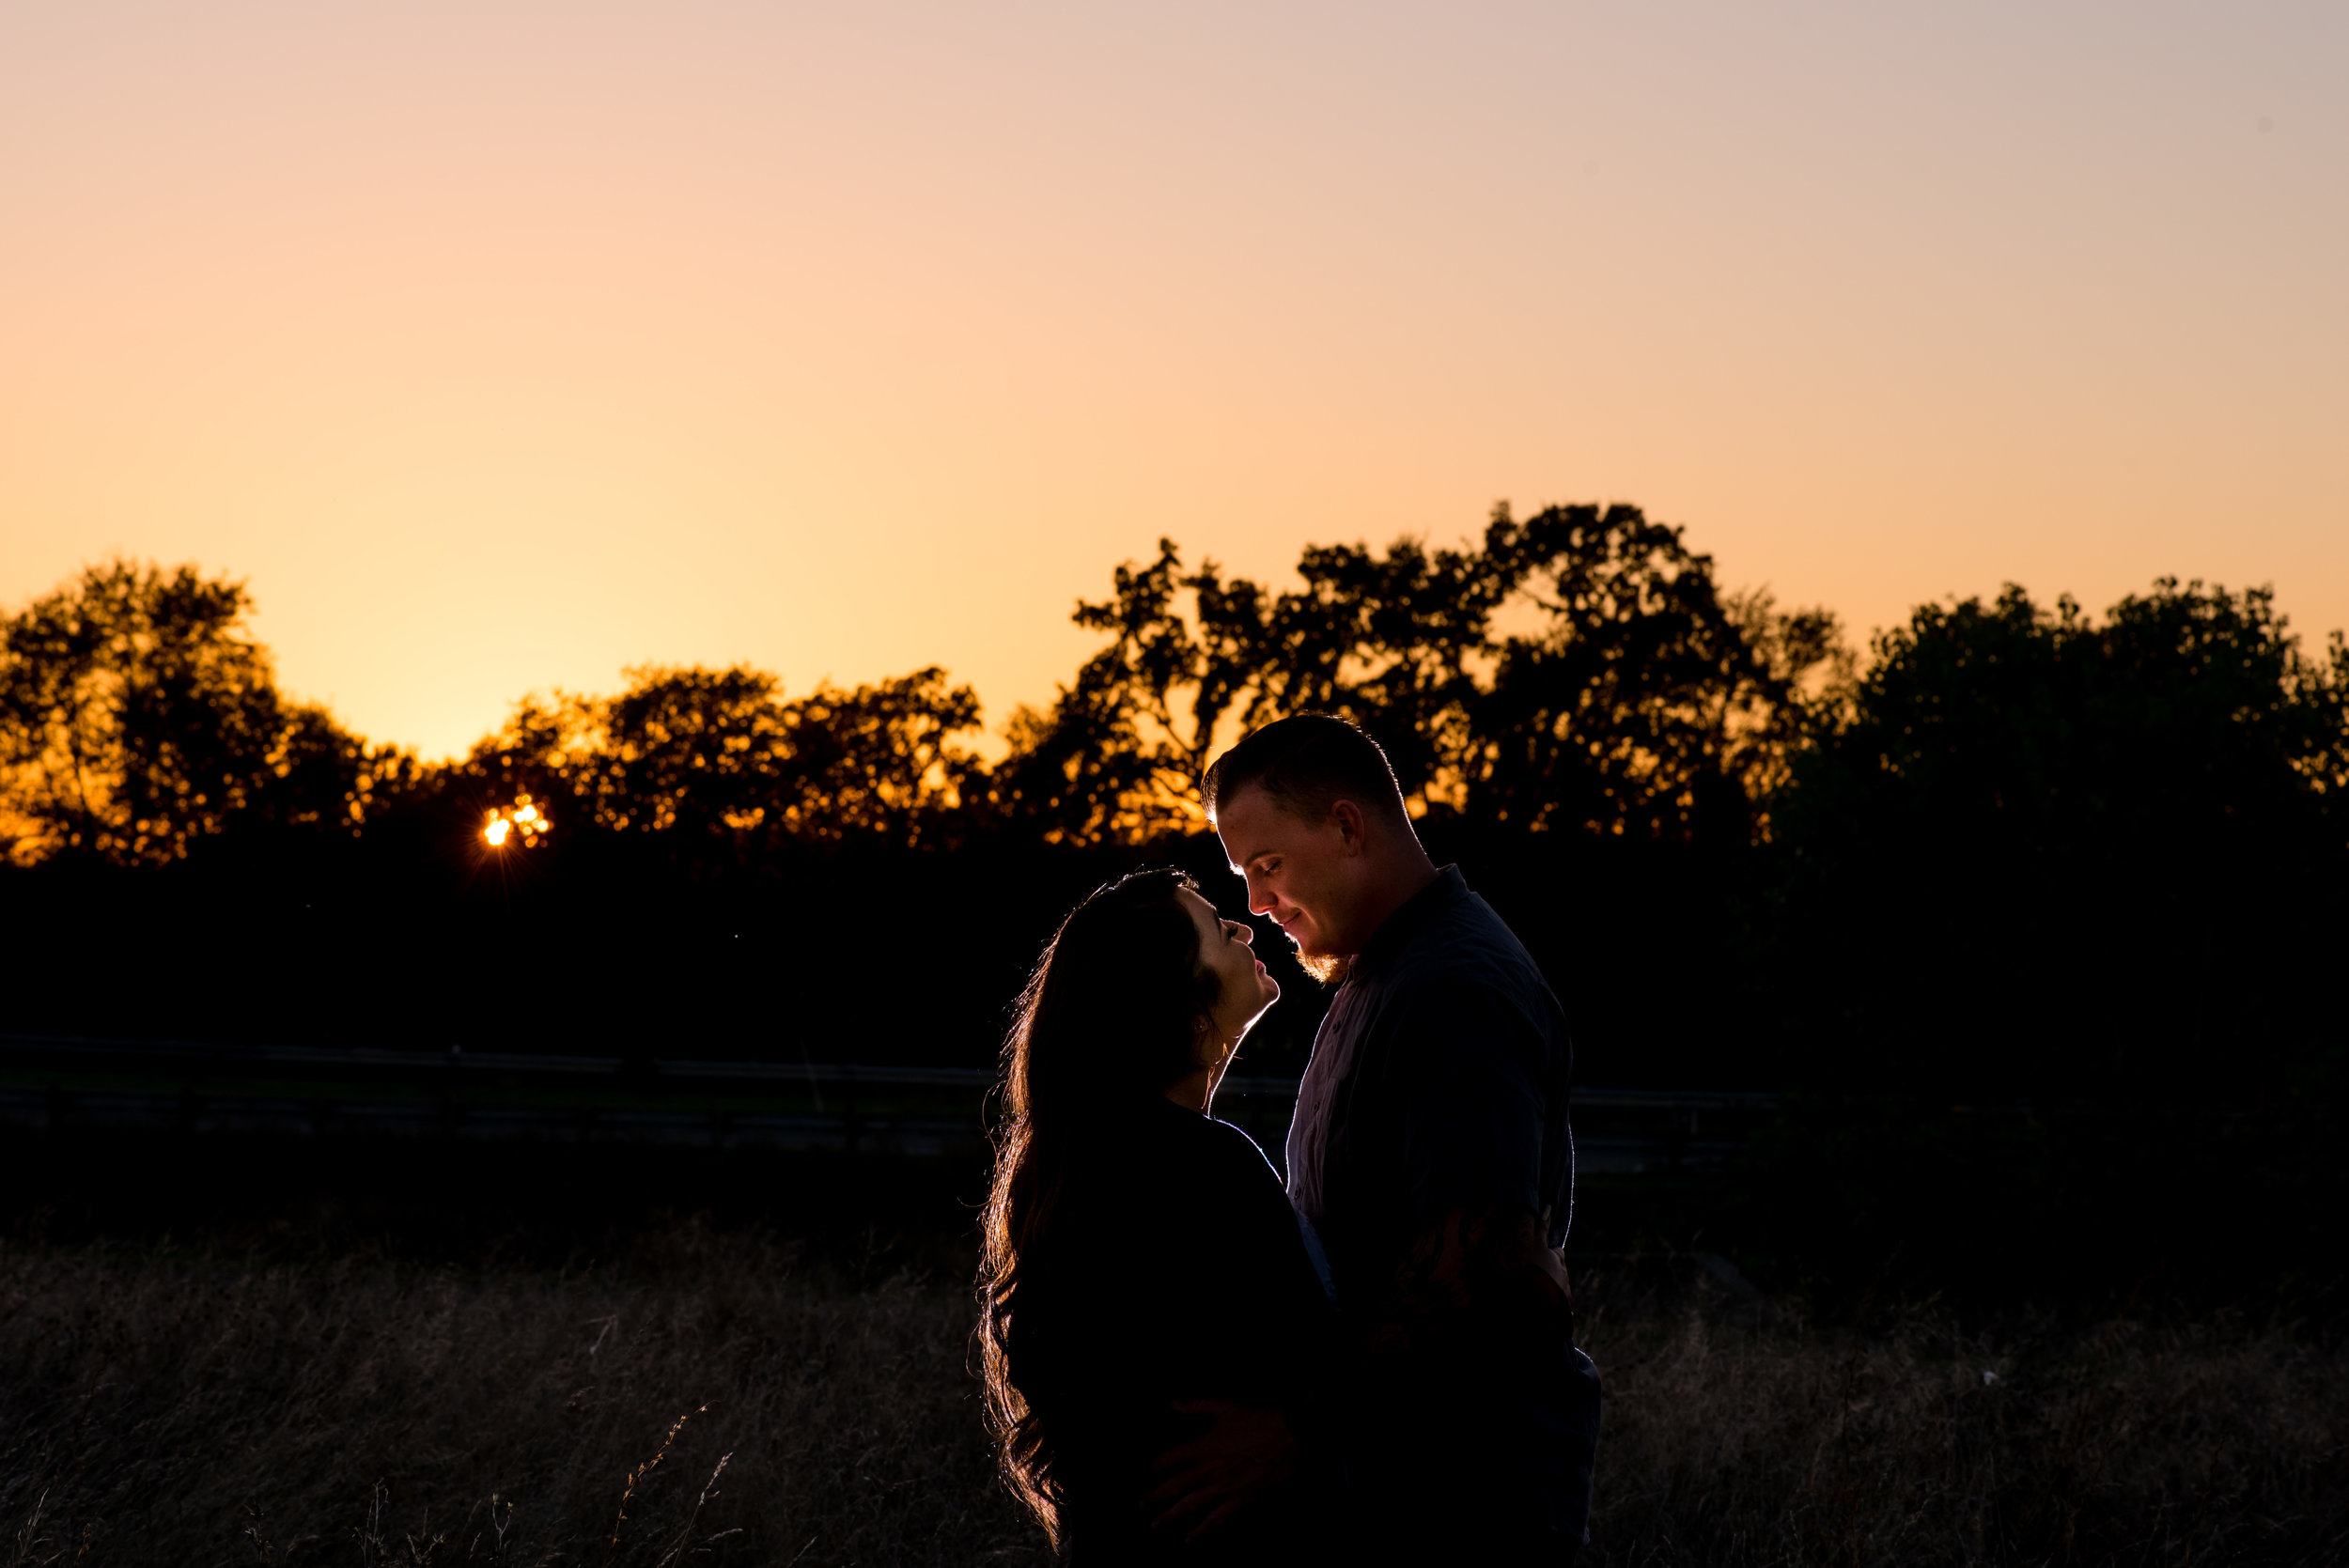 erica-garrett-016-sacramento-engagement-wedding-photographer-katherine-nicole-photography.jpg